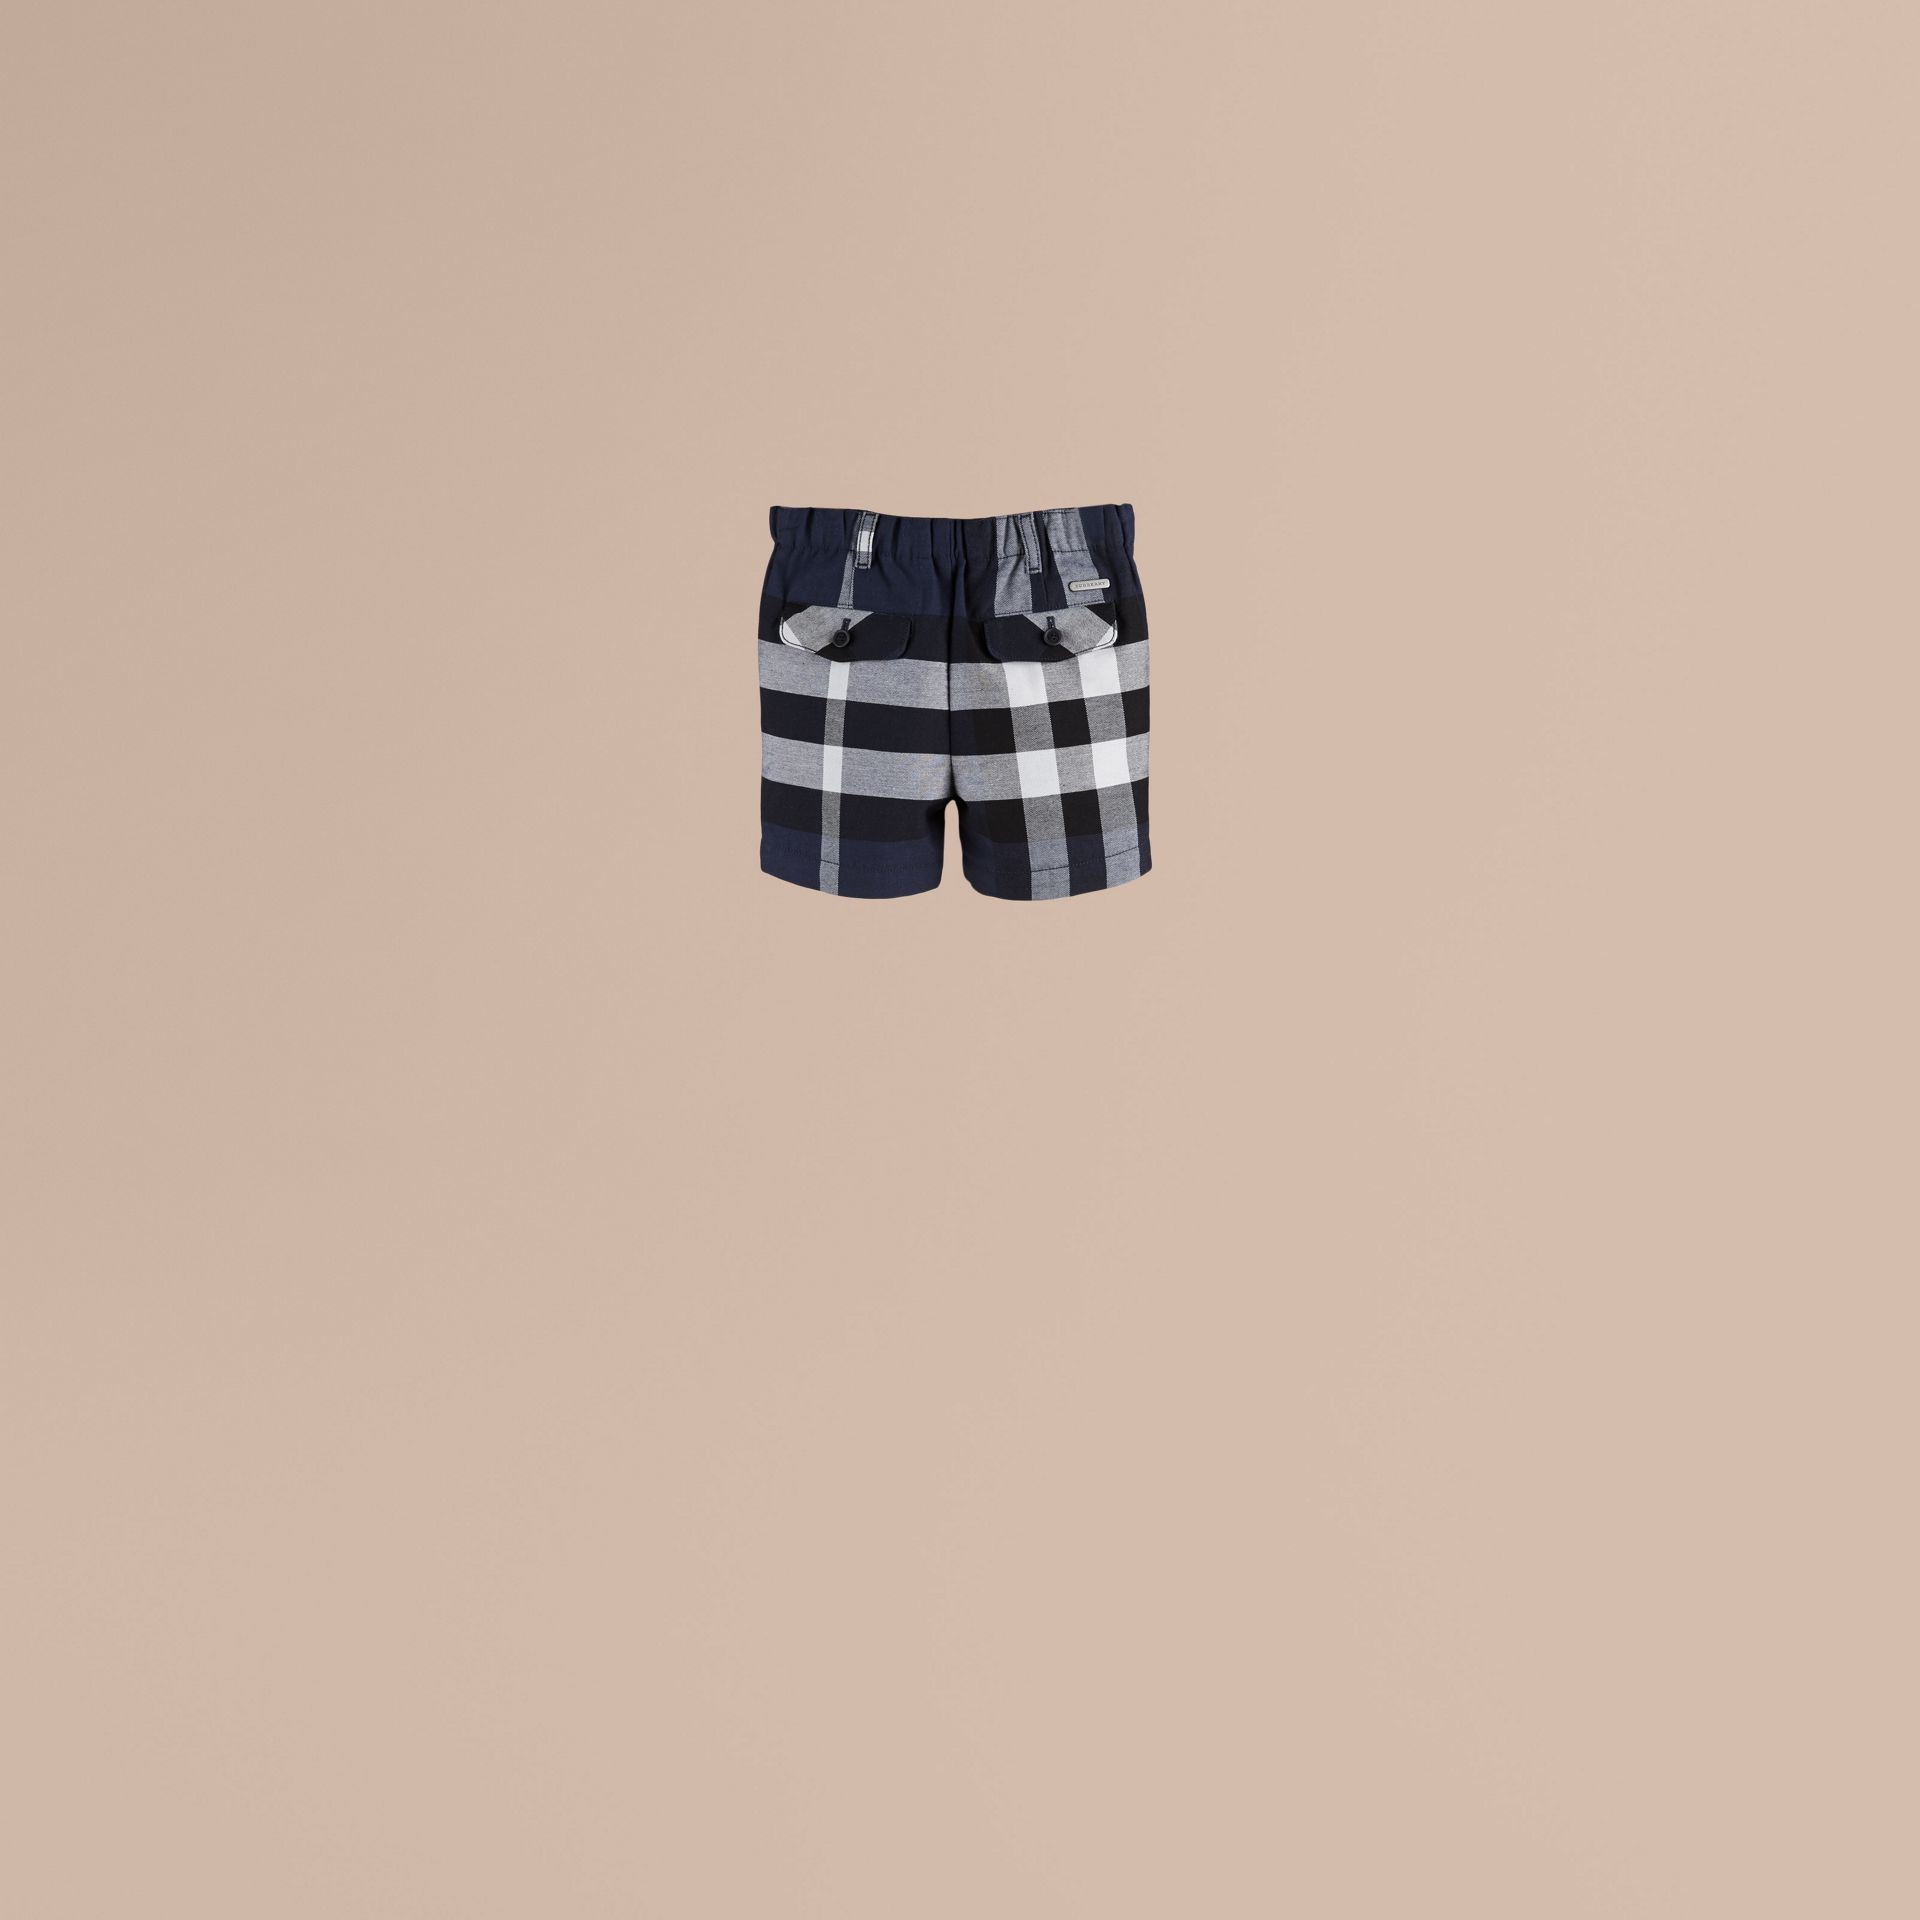 Short chino en coton à motif check (Marine) - Garçon | Burberry - photo de la galerie 2